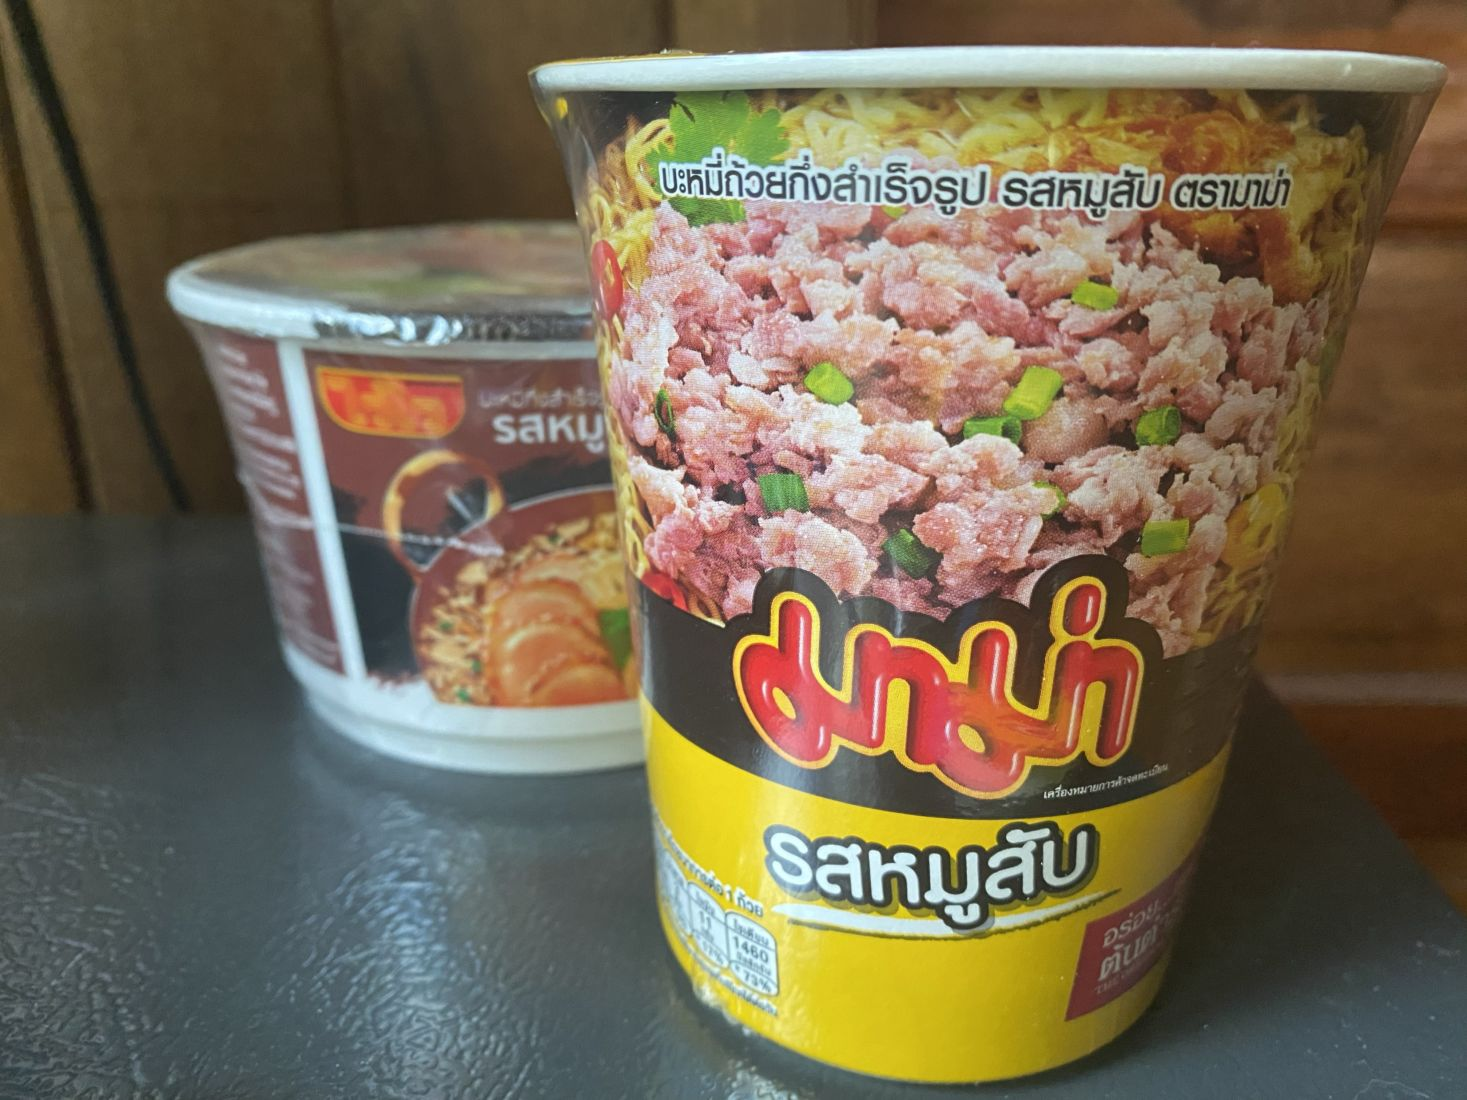 Instant noodle exports increase as neighbouring countries stock up | The Thaiger